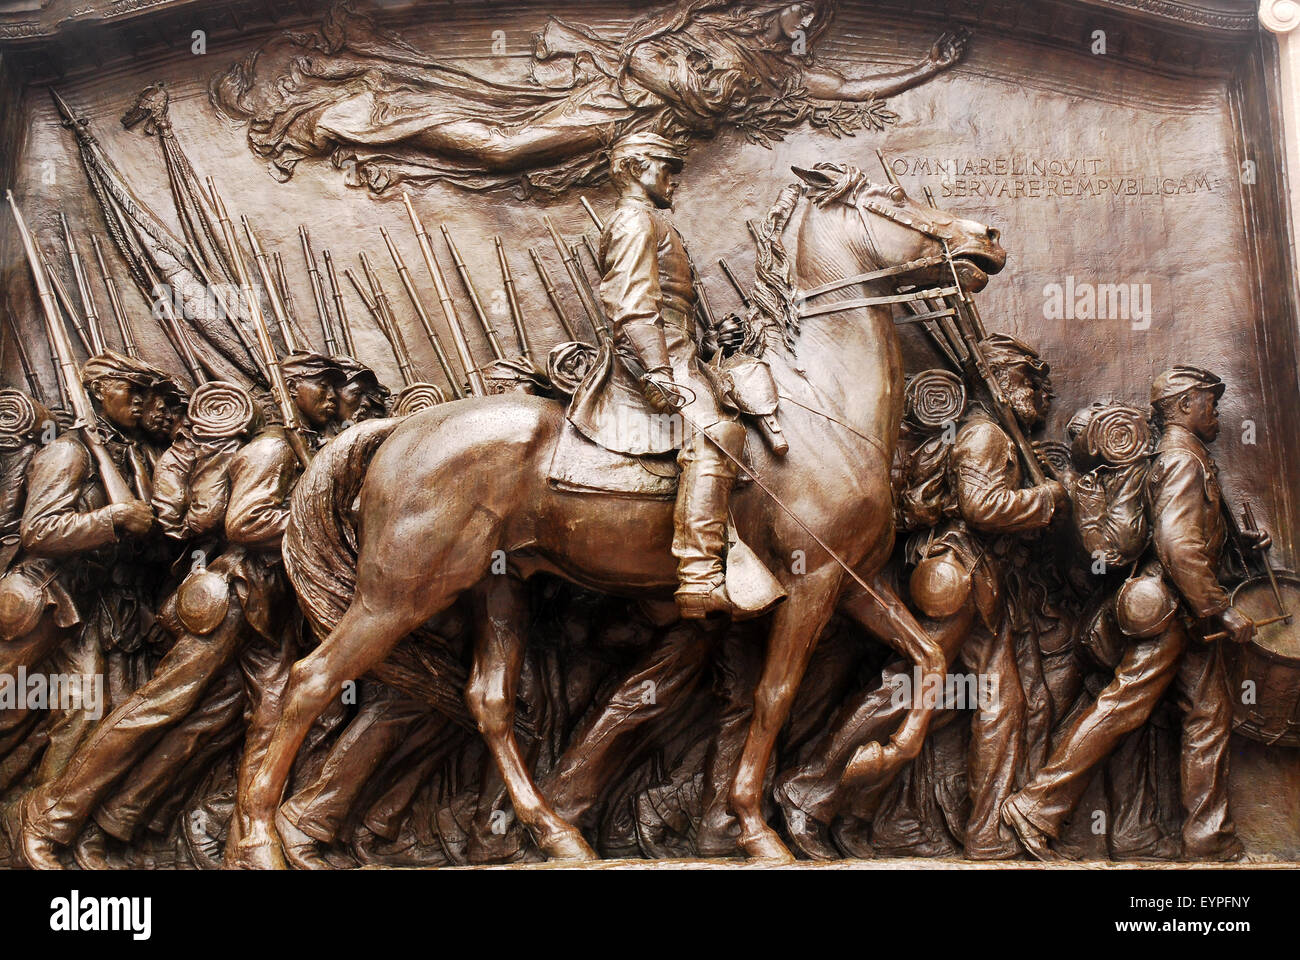 A monument to the Massachusetts 54th, the first all Aftrican Ameircan fighting unit in Ameican history fighting - Stock Image